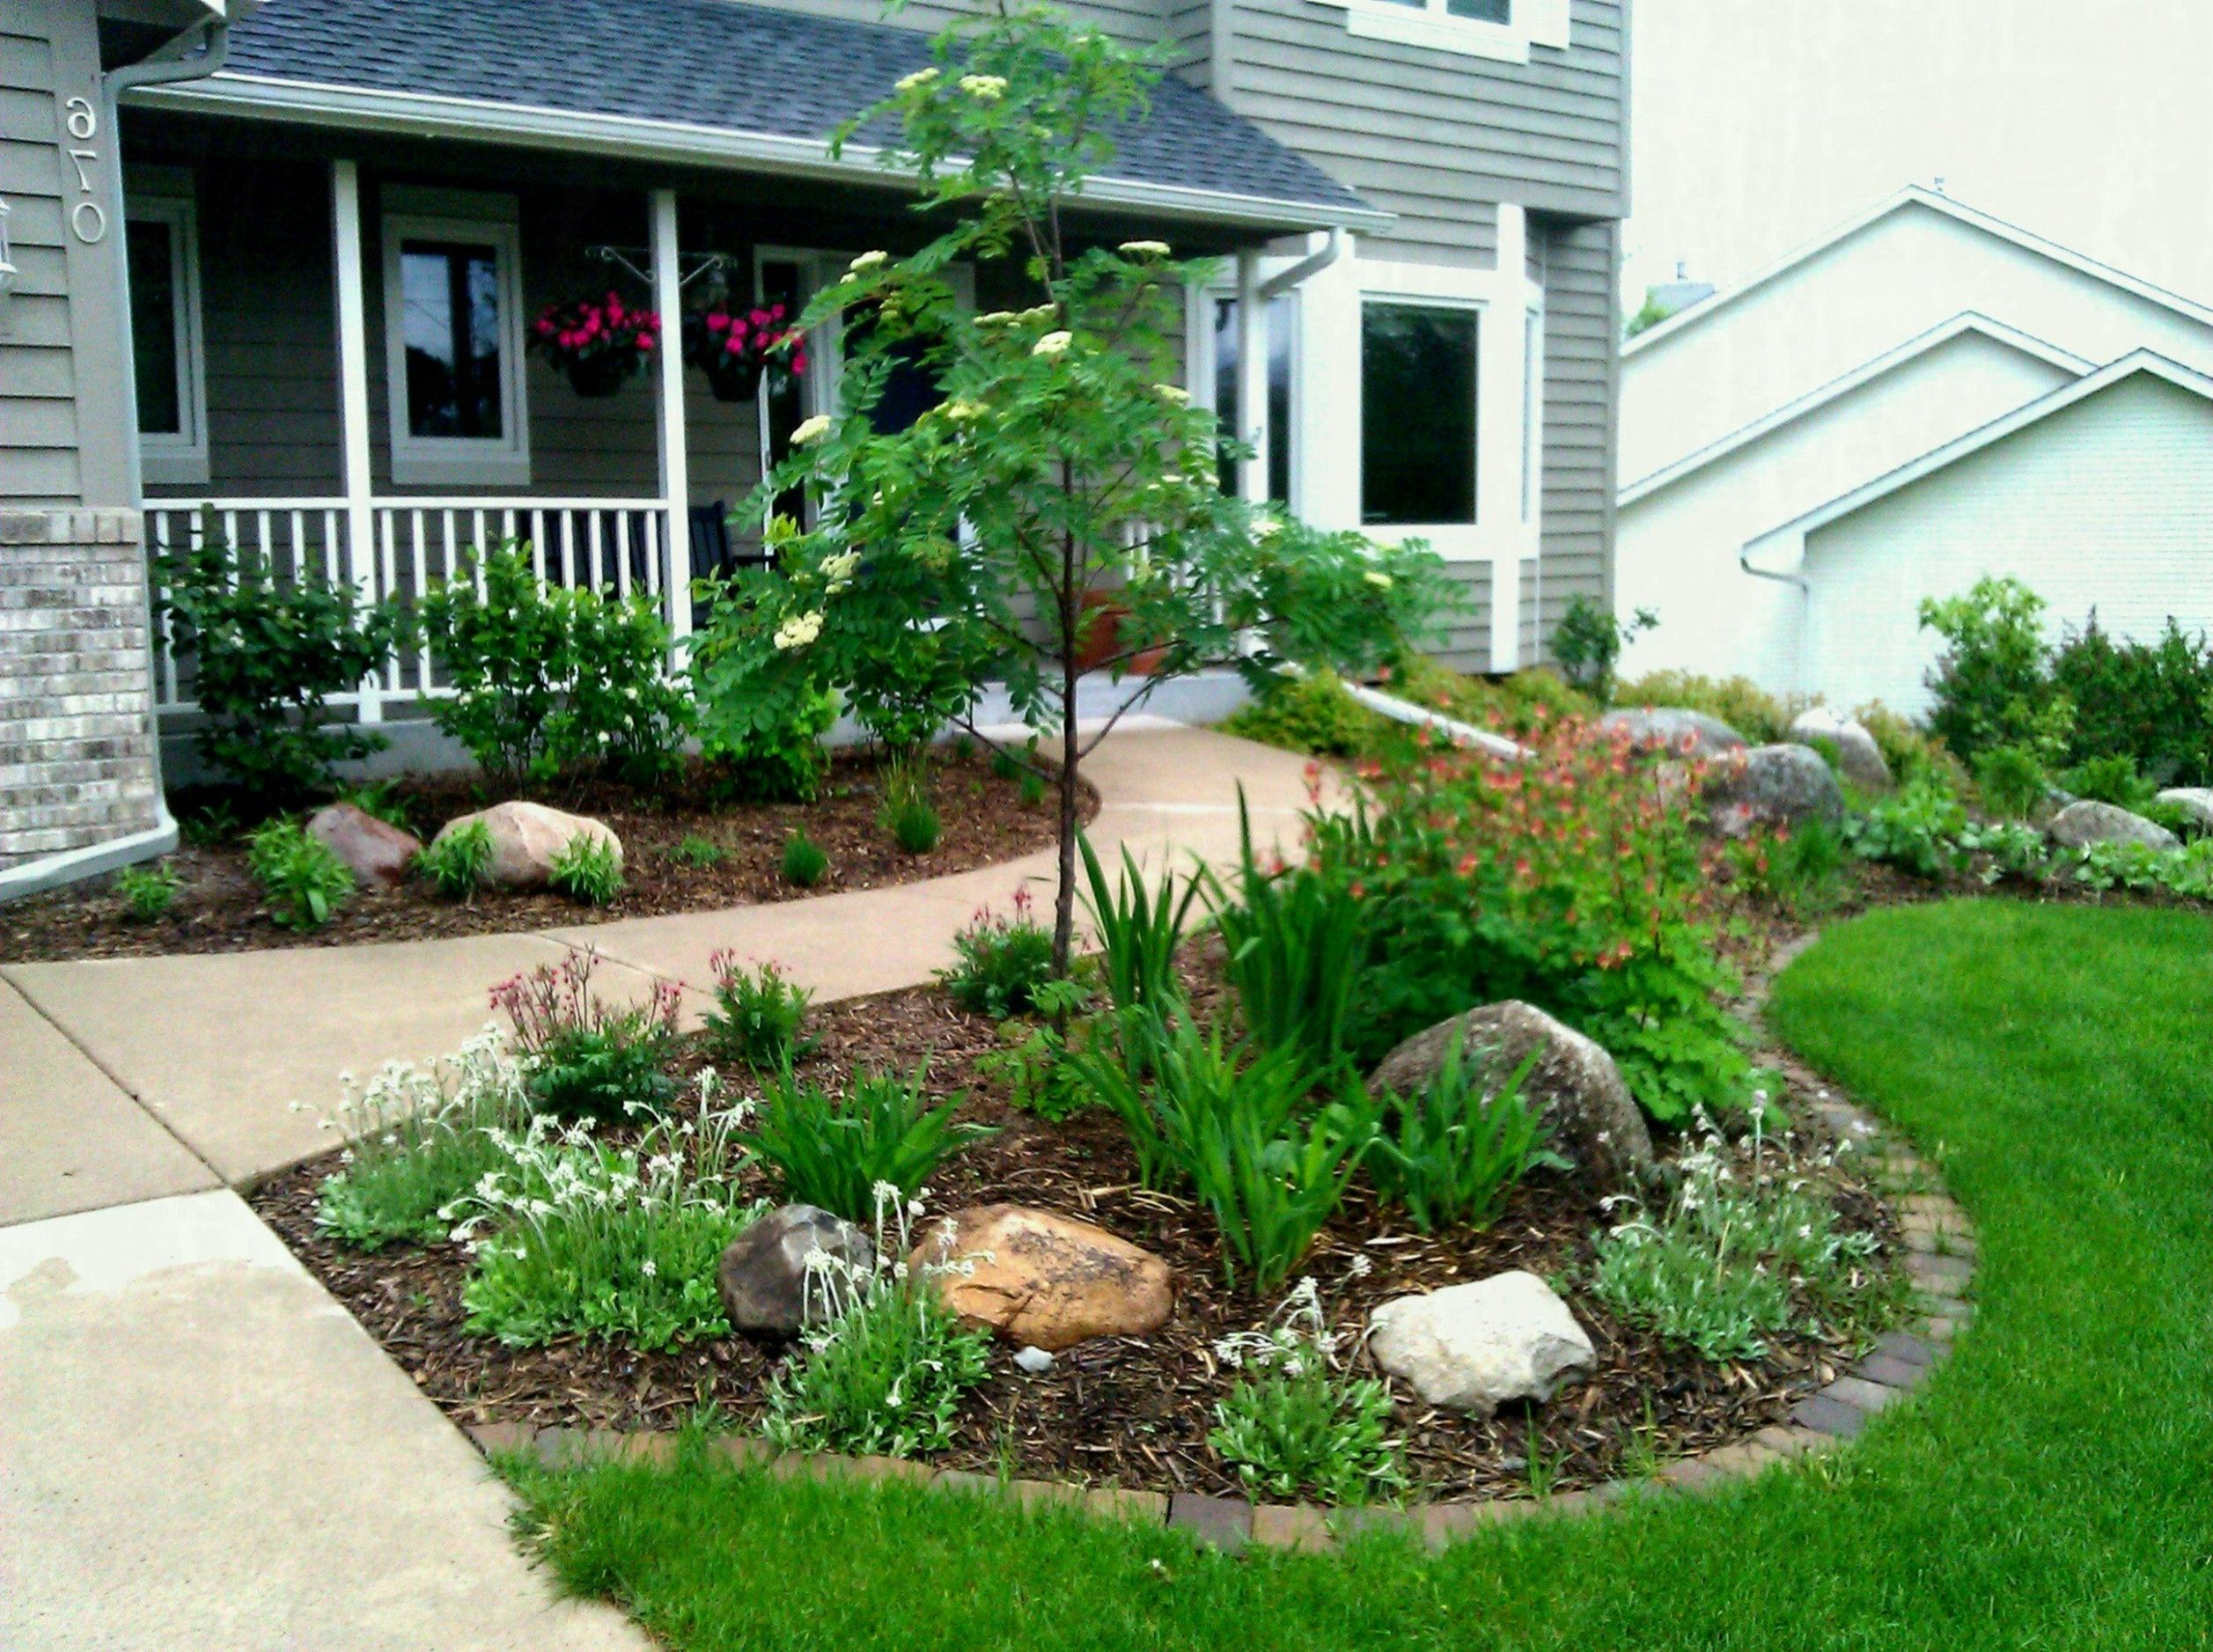 Garden Ideas Front House Stylish And Patio Small Yard Landscaping Inexpensive Backyard Outdoor Patio Landscaping Front Yard Landscaping Rock Garden Landscaping